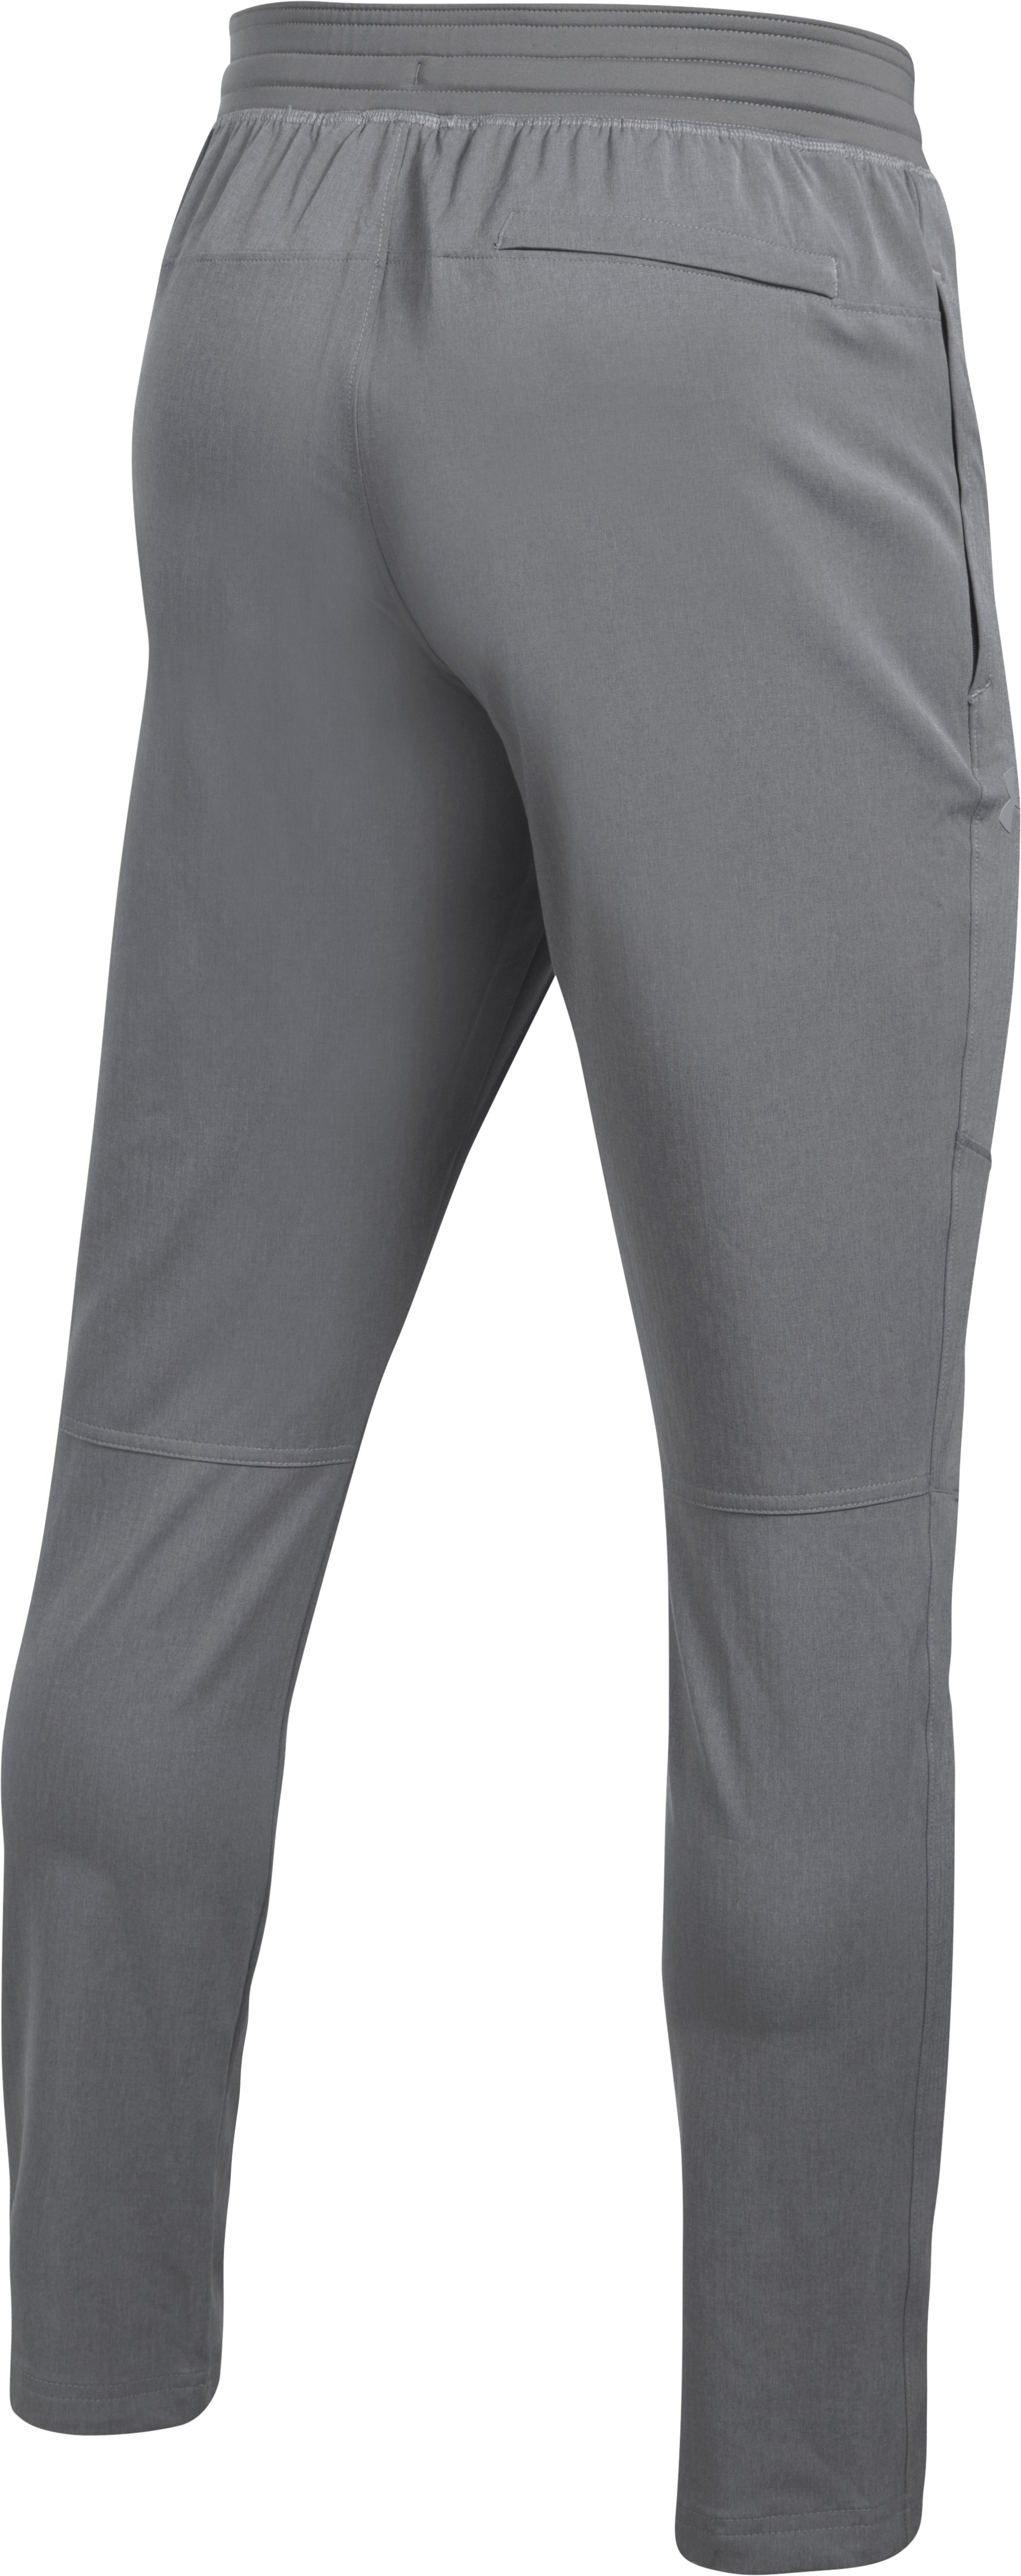 Men's UA WG Woven Pants, True Gray Heather, undefined